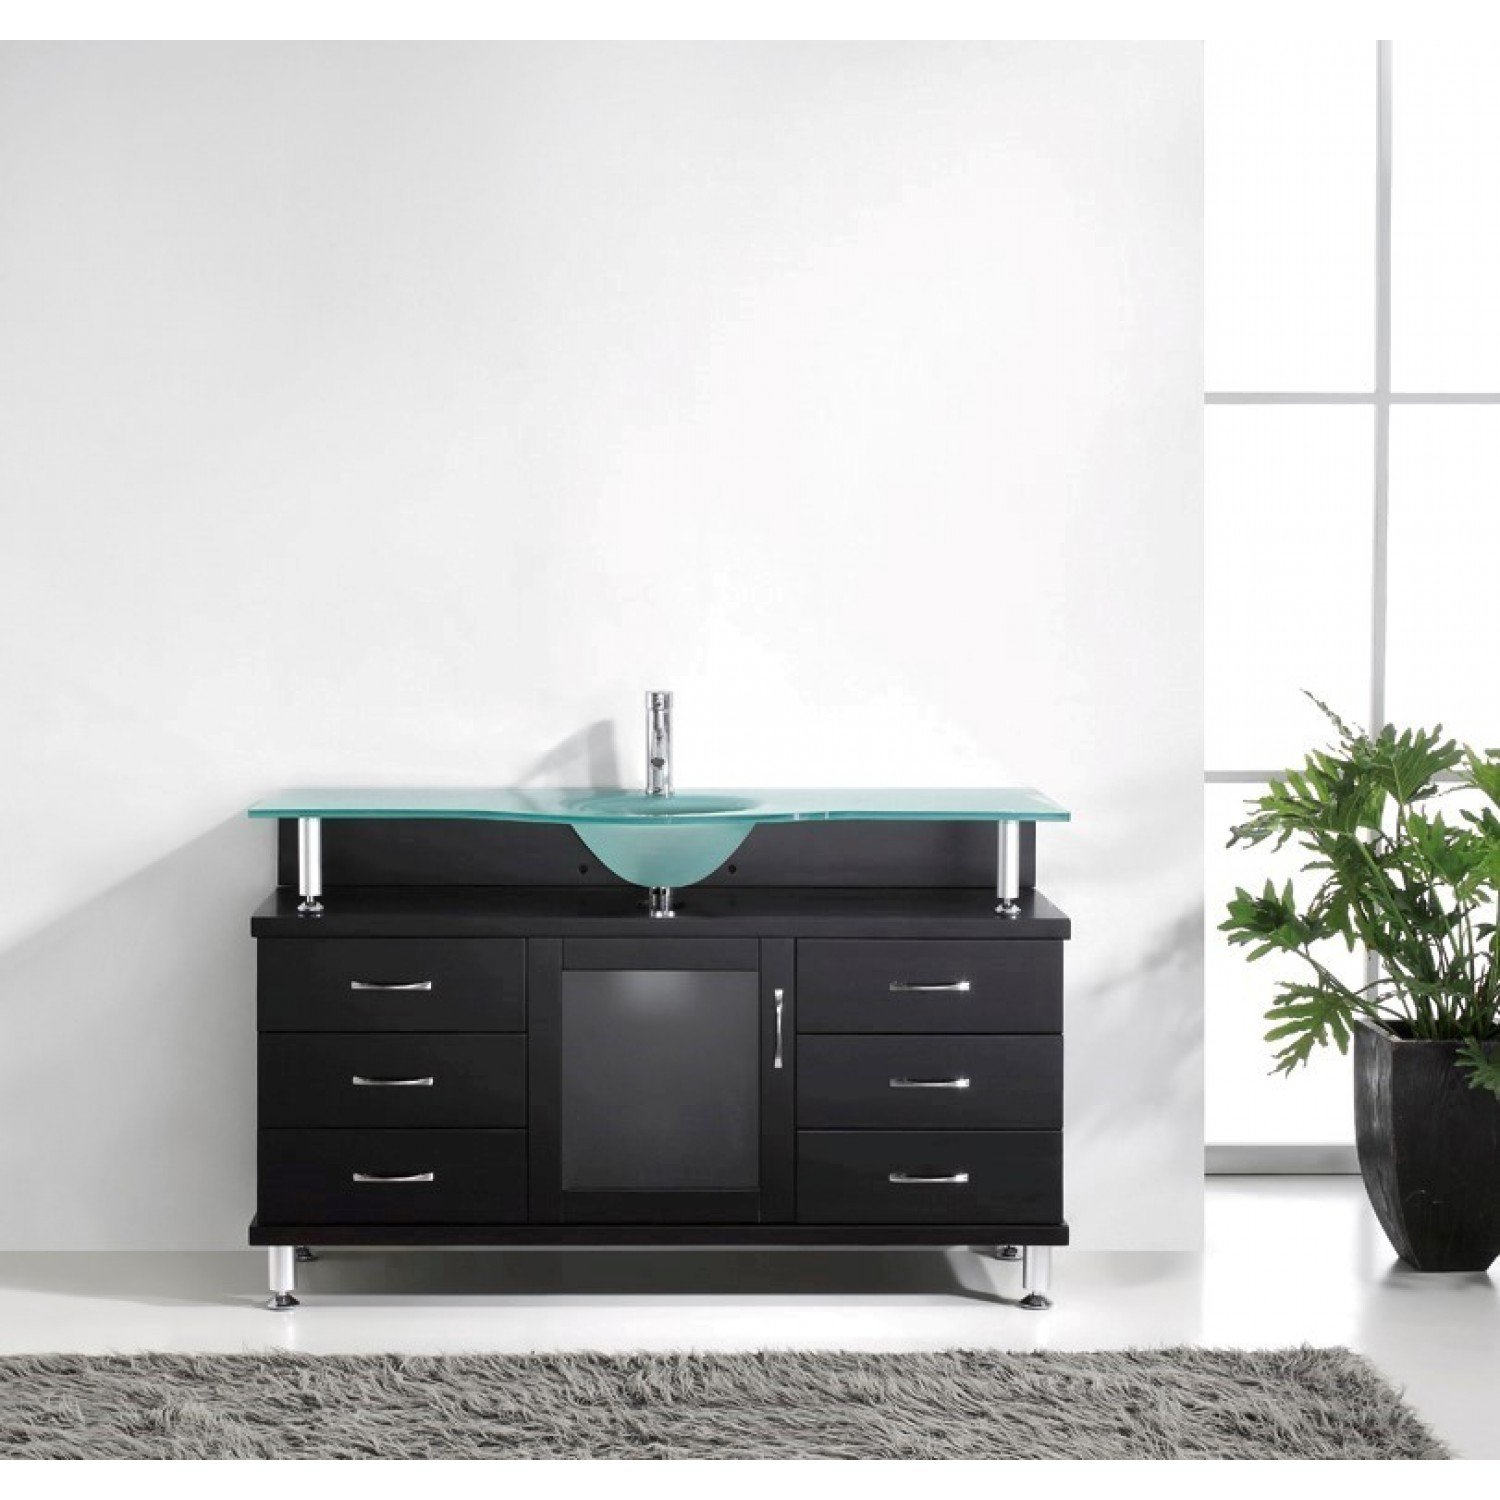 Virtu USA MS 55 FG ES Vincente 55 Inch Bathroom Vanity With Single Sink  With Frosted Tempered Glass Countertop, Espresso Finish     Amazon.com